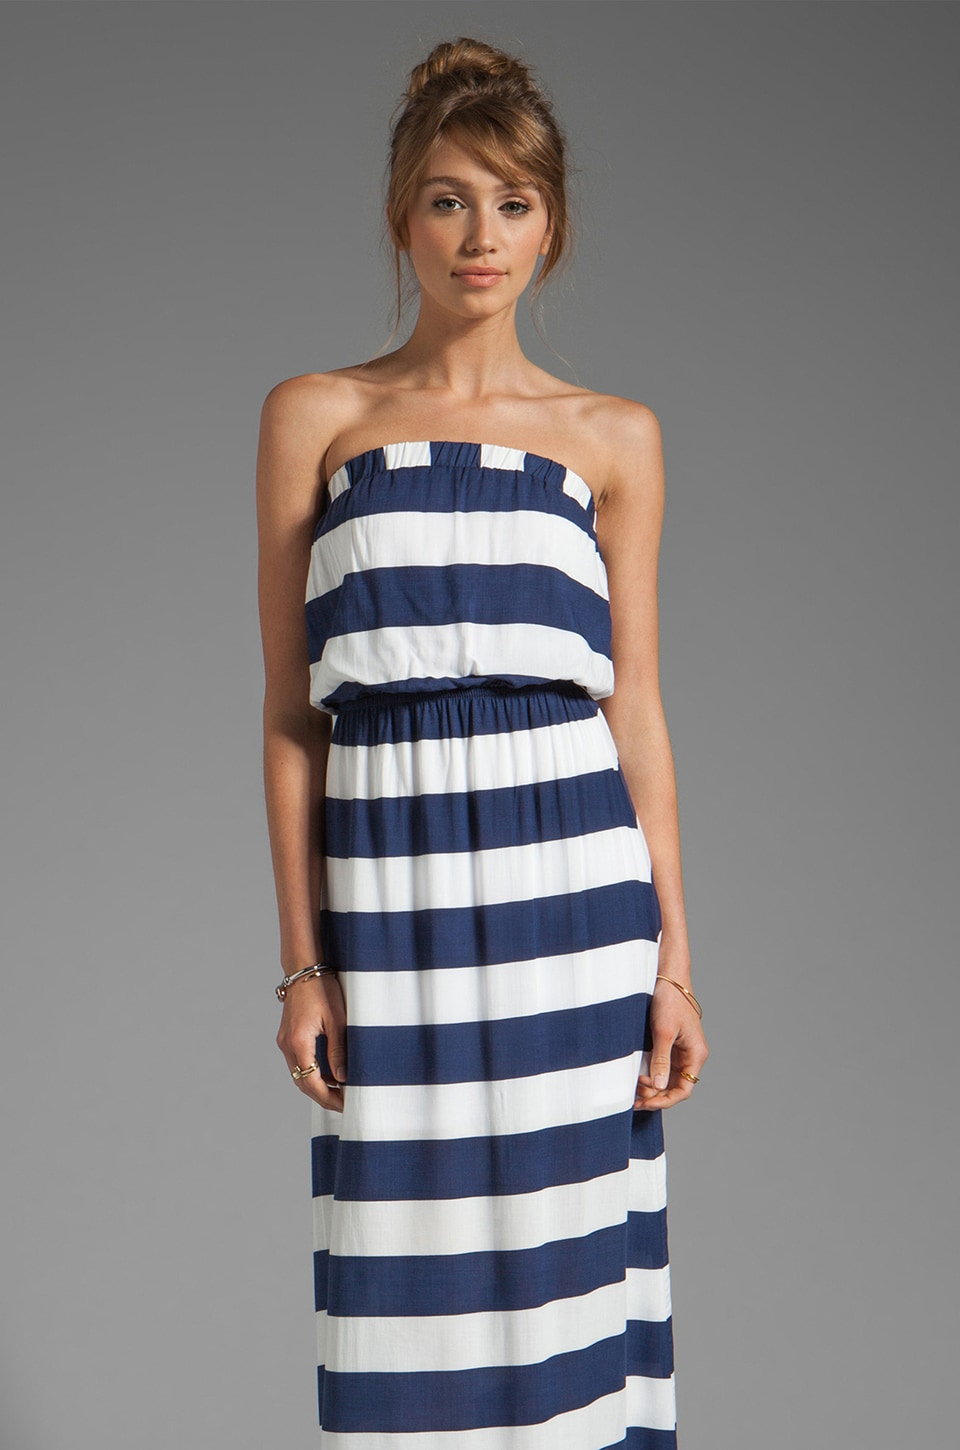 Splendid Magnolia Stripe Maxi Dress in Navy/White